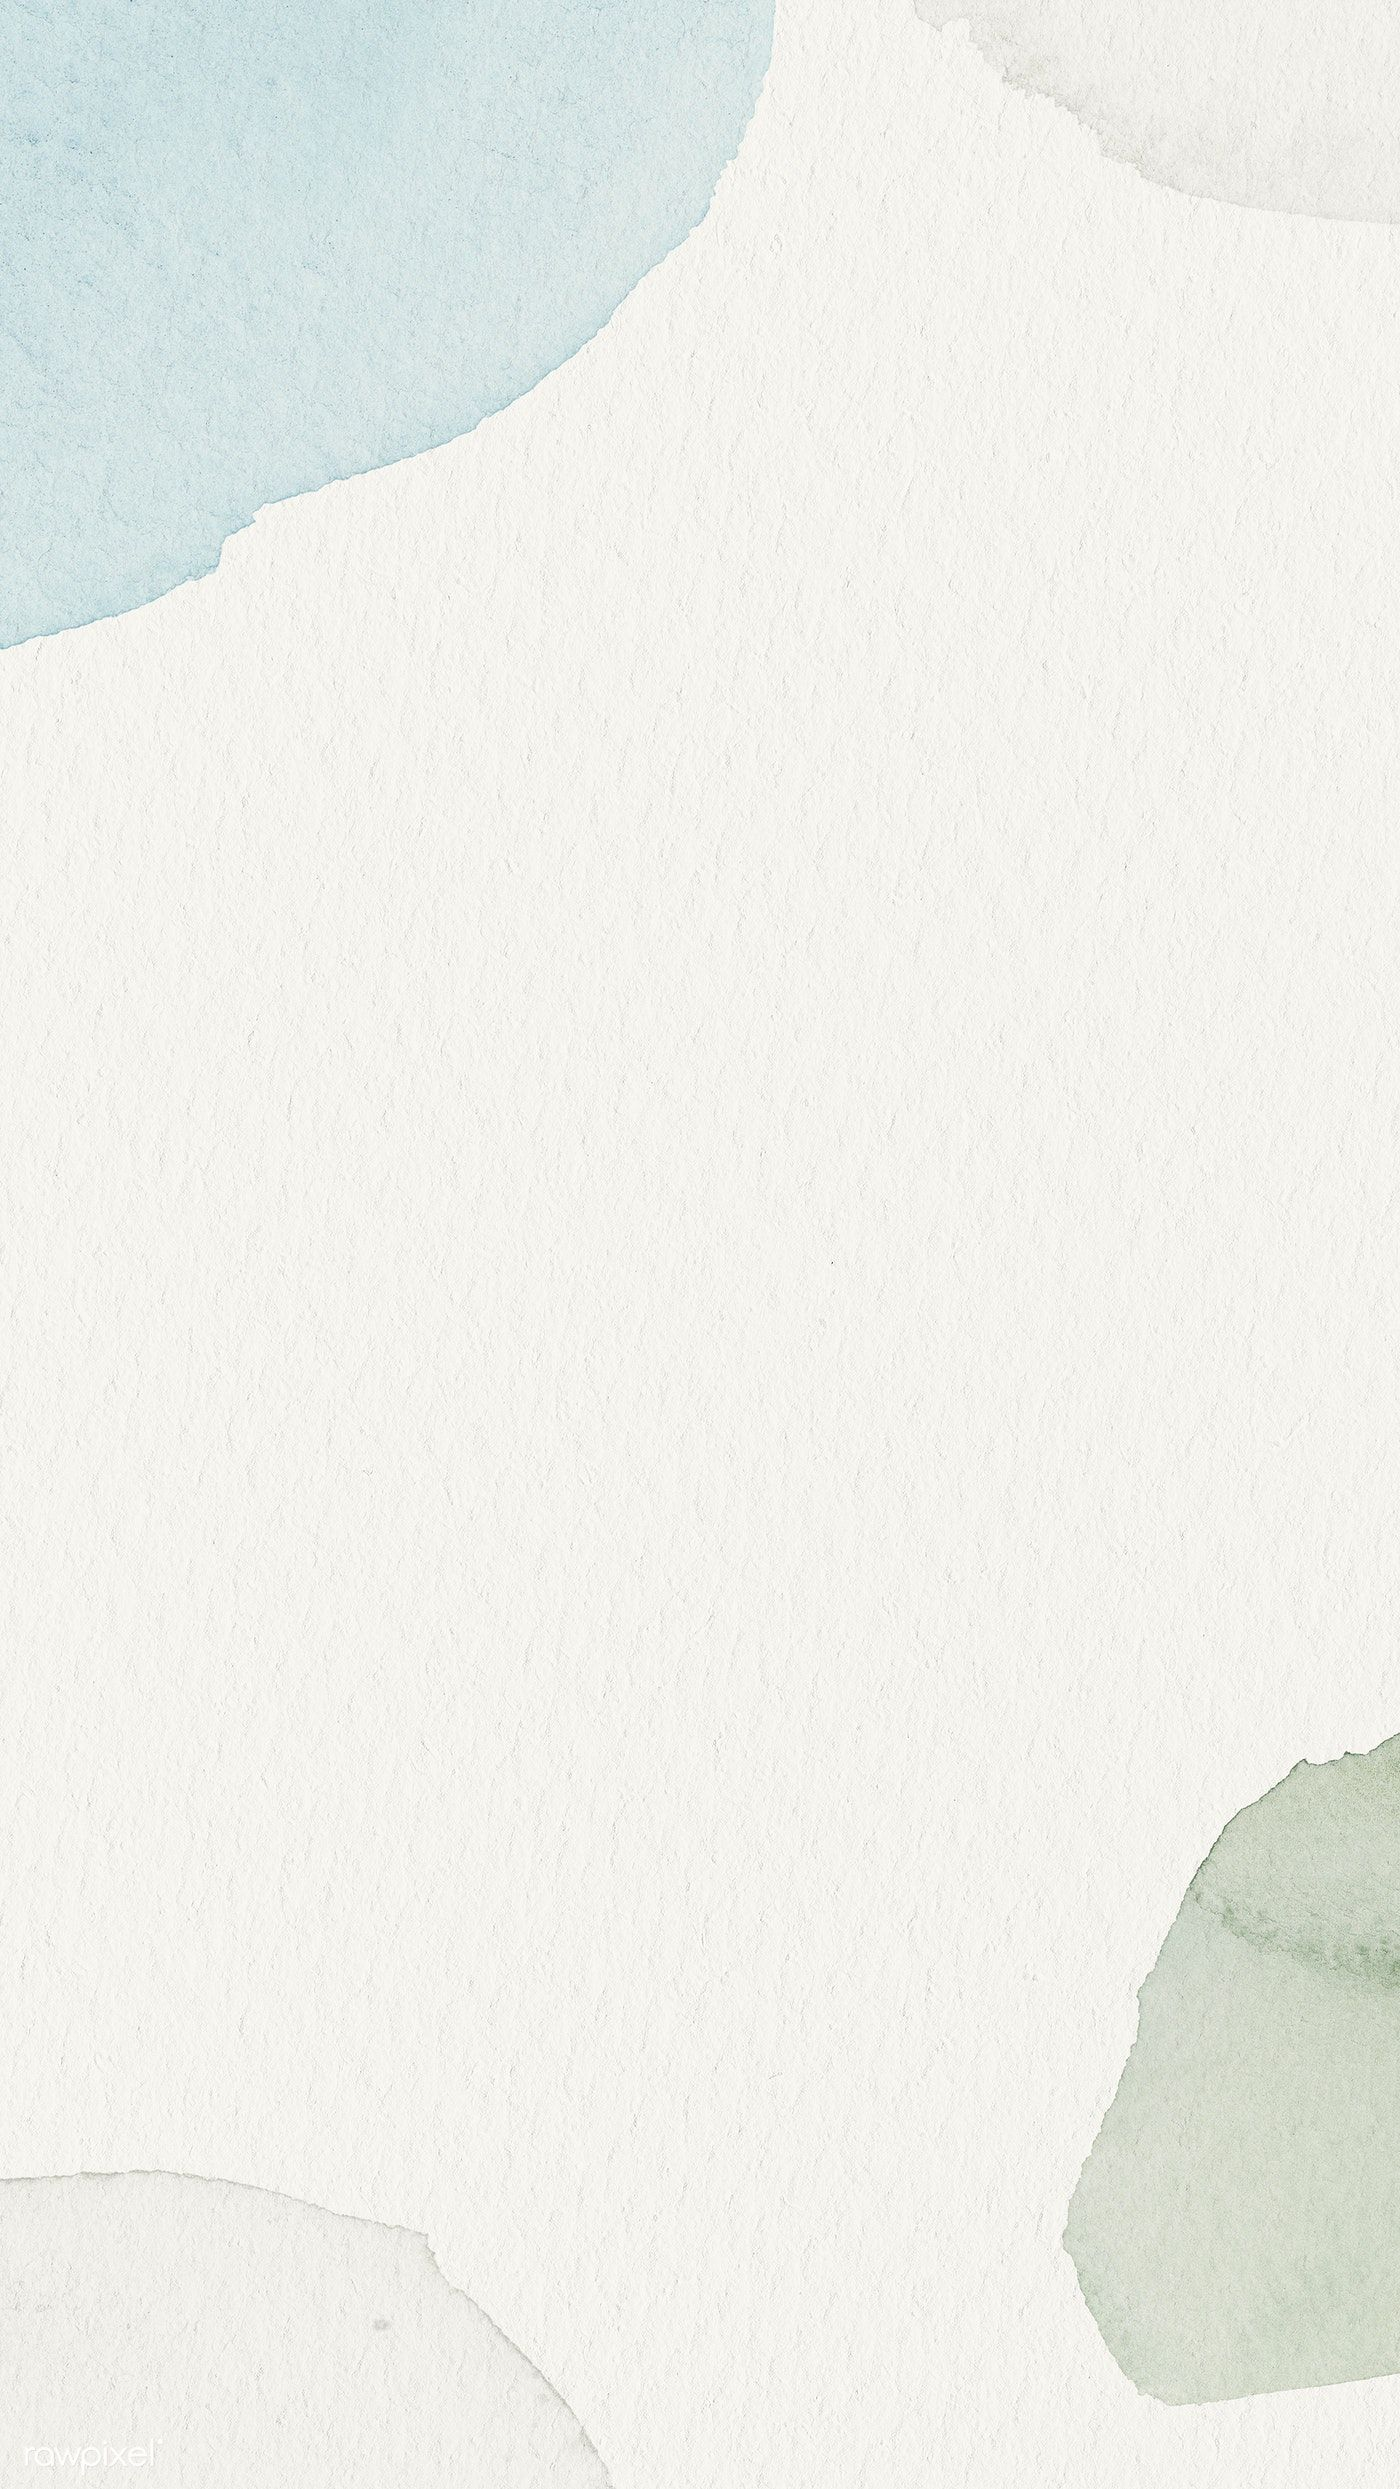 Download premium illustration of Blue and green watercolor patterned